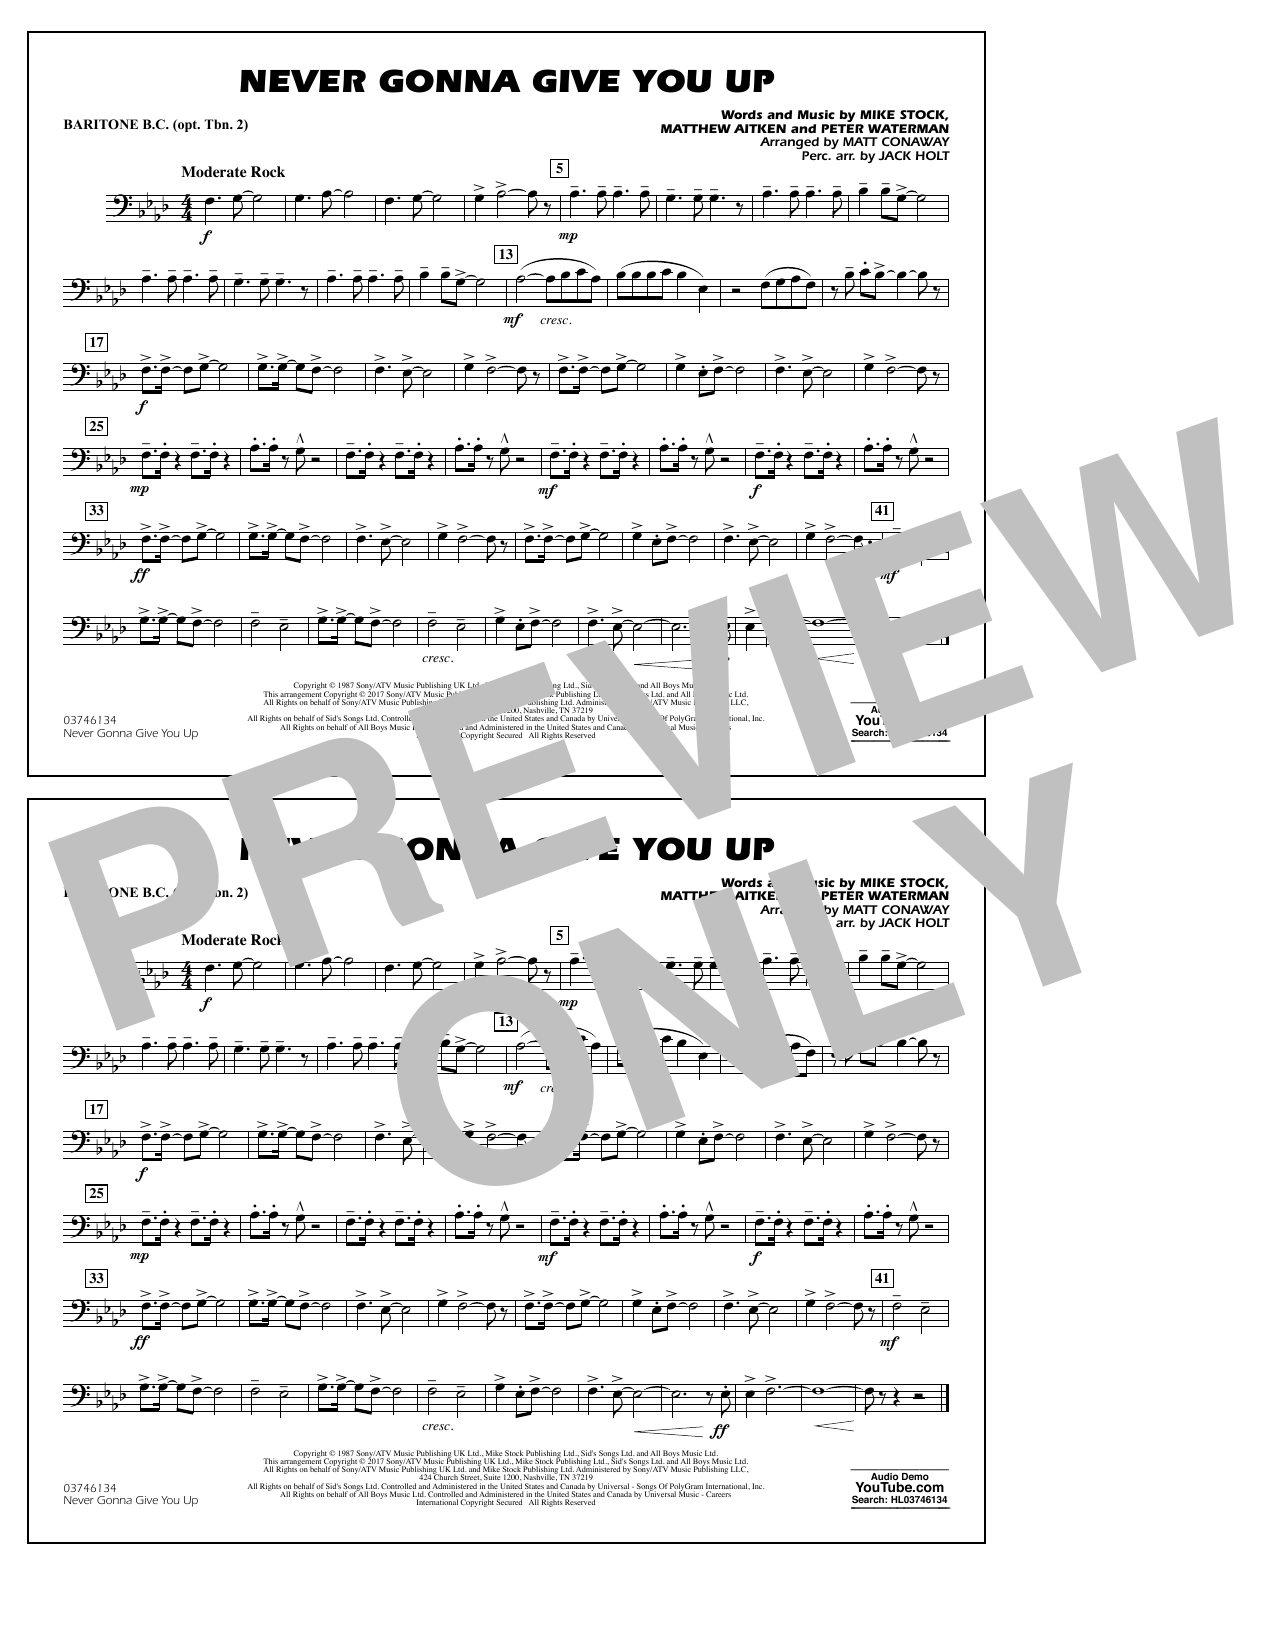 Never Gonna Give You Up - Baritone B.C. (Opt. Tbn. 2) Sheet Music